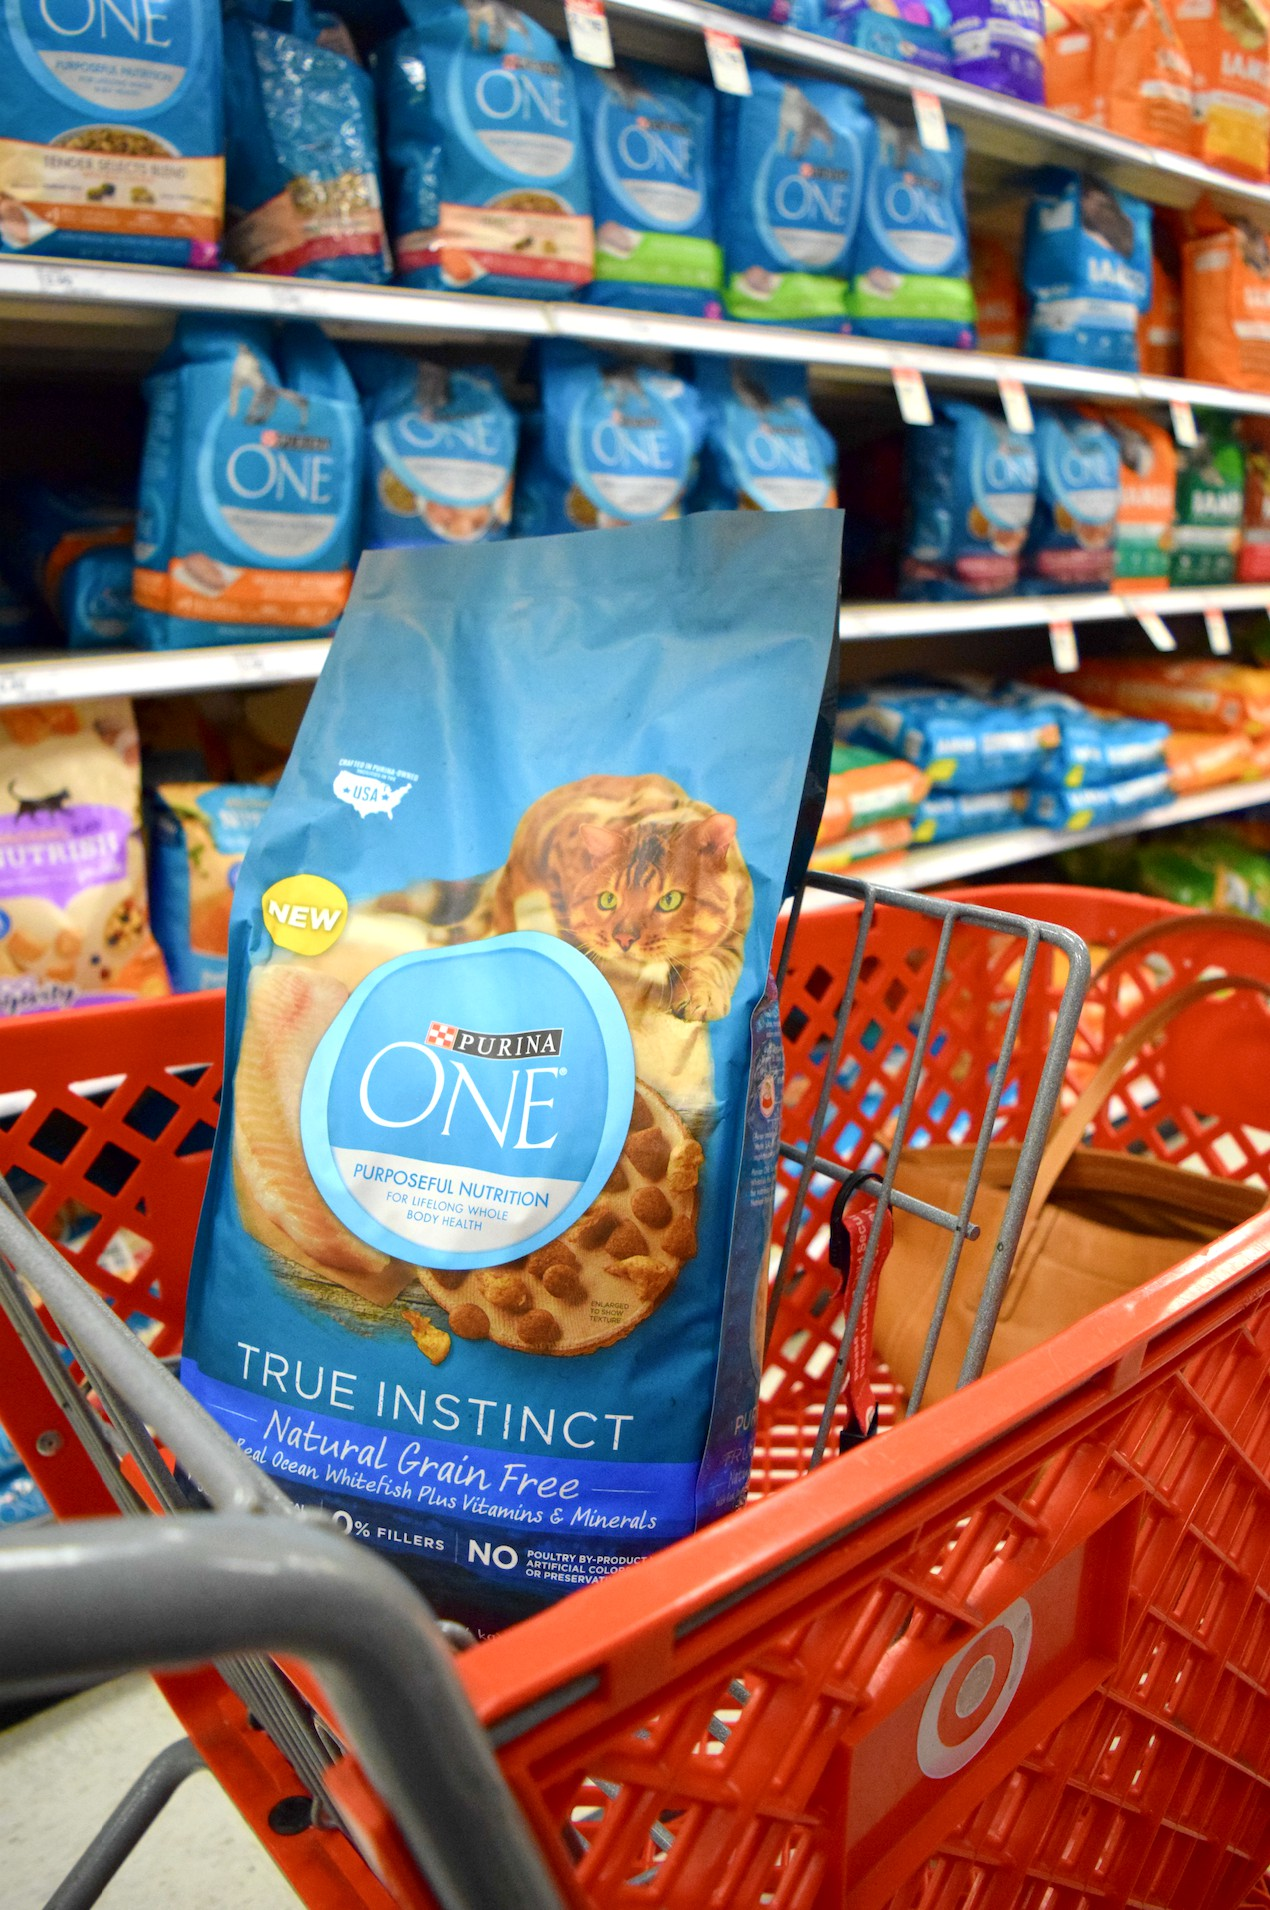 Love shopping at Target? Here are 7 Easy Ways to Save at Target + find some great deals on Purina ONE pet food all through September!